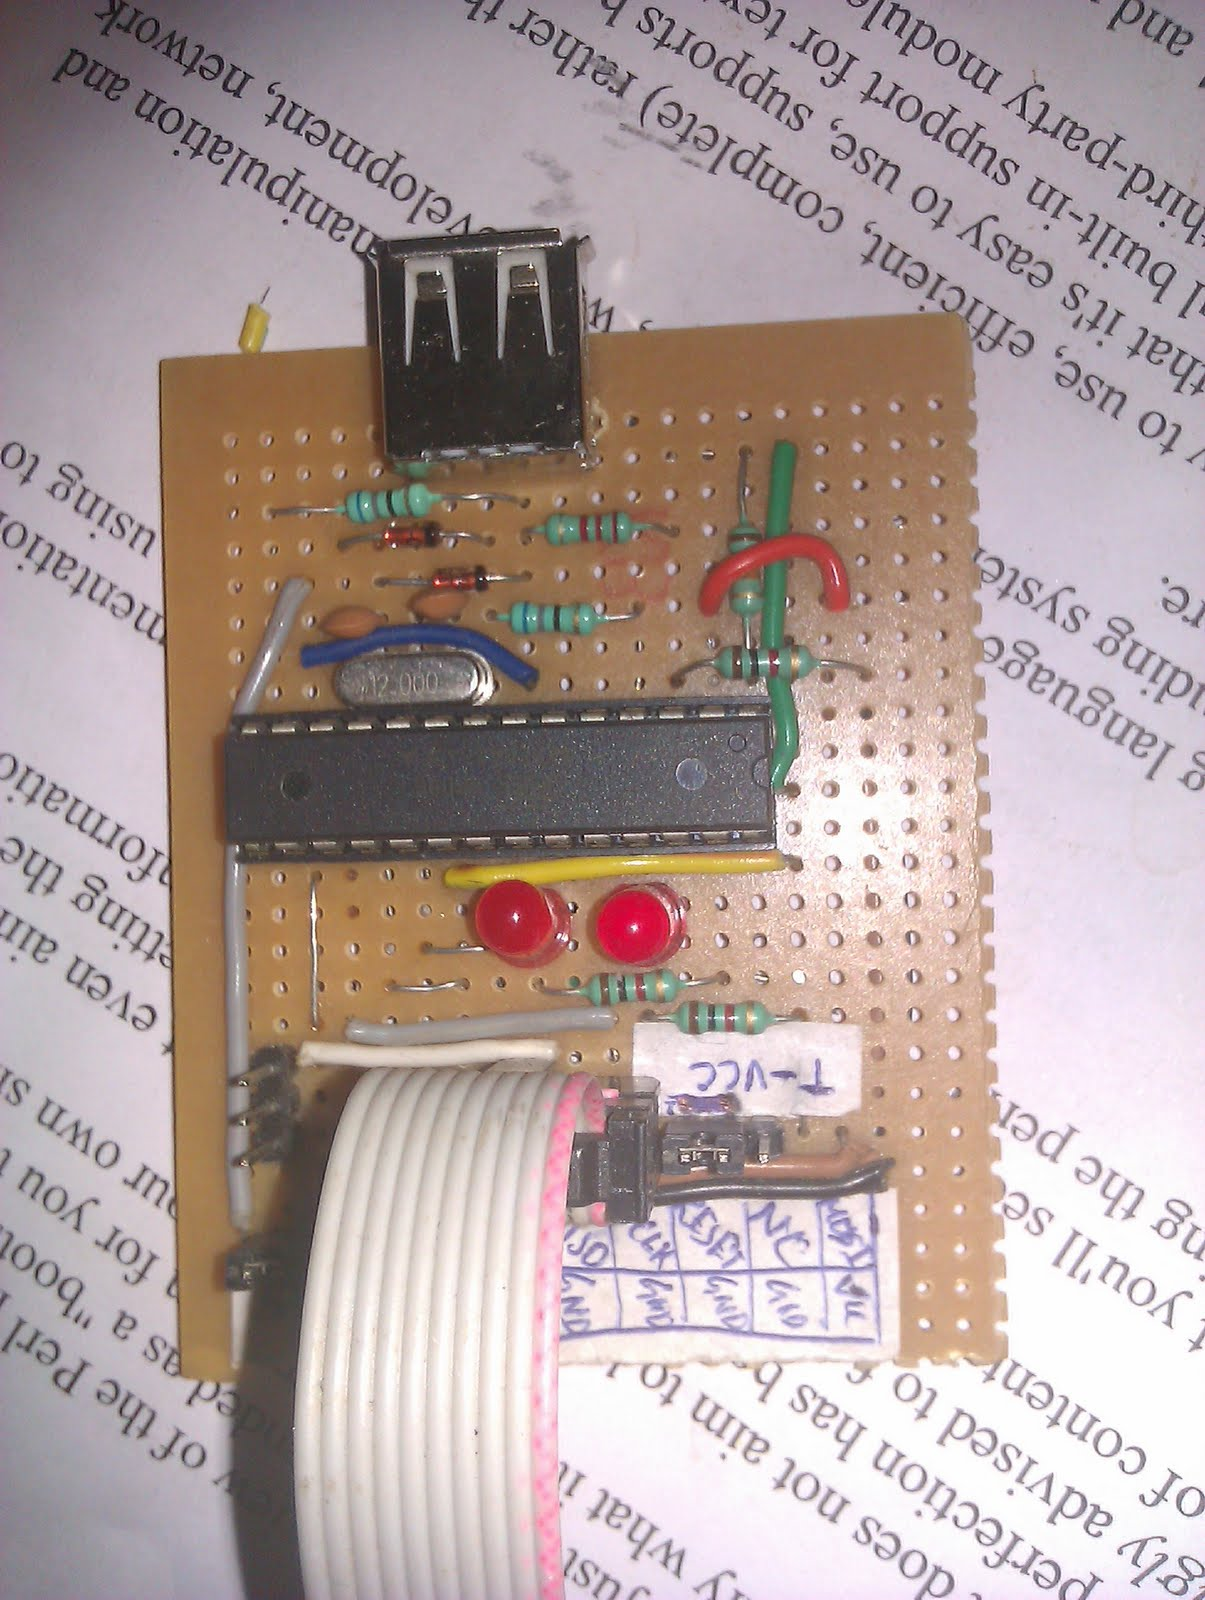 Usbasp Usb Programmer For Atmel Avr Controllers My Linux Using Atmega8 Prototype